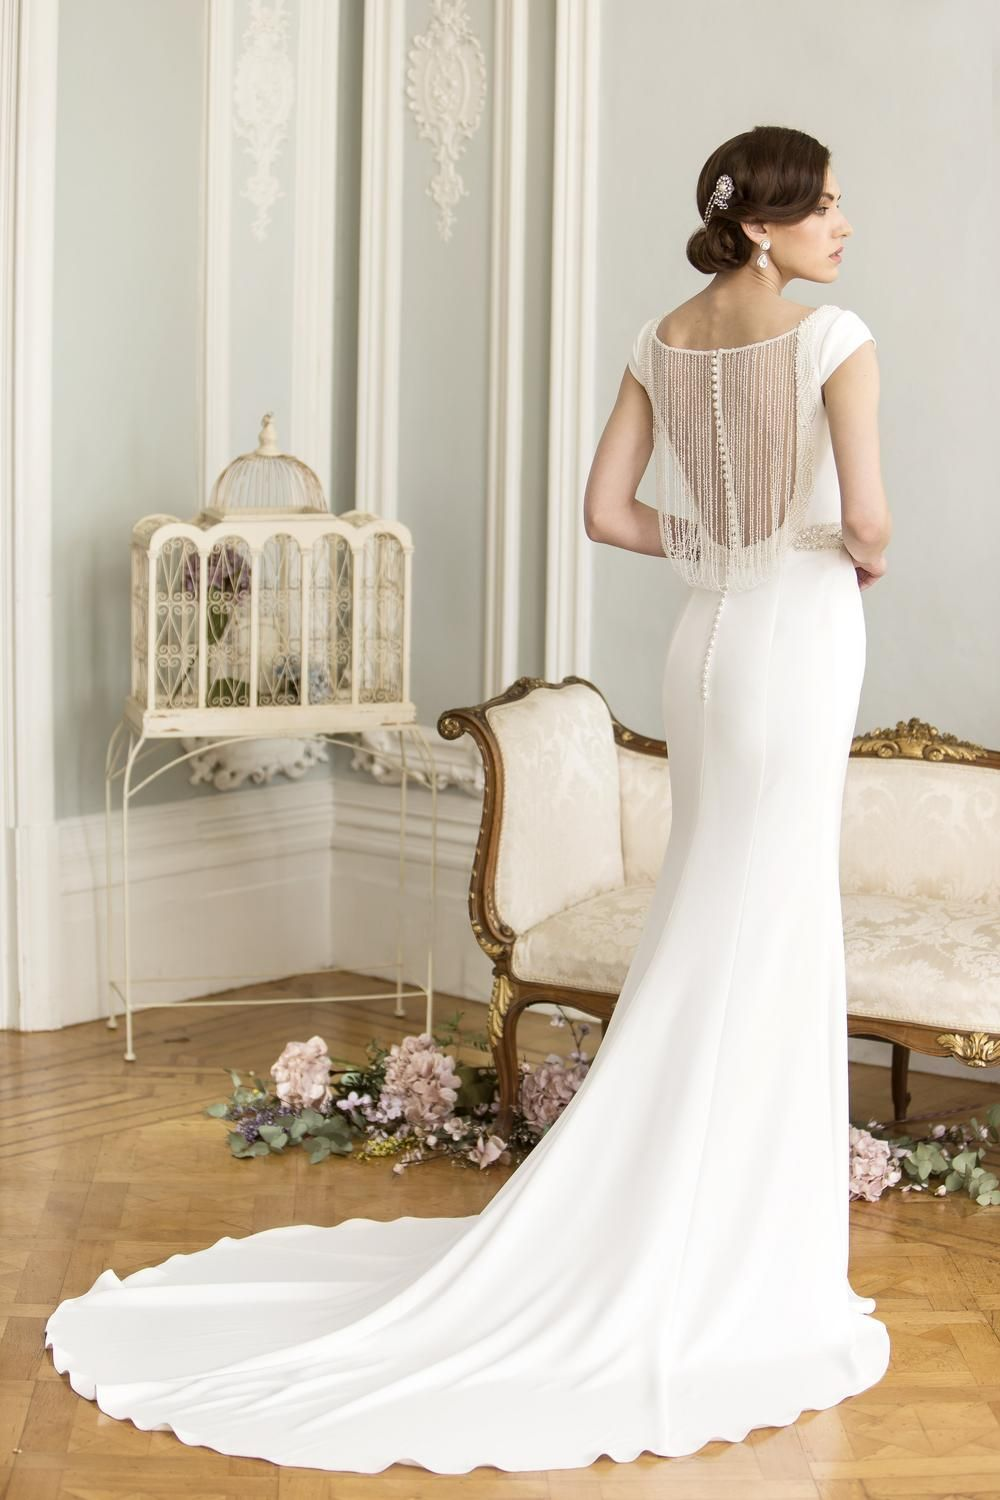 Dramatic wedding dresses  Make a dramatic aisle entrance with this glamorous crepe wedding dr